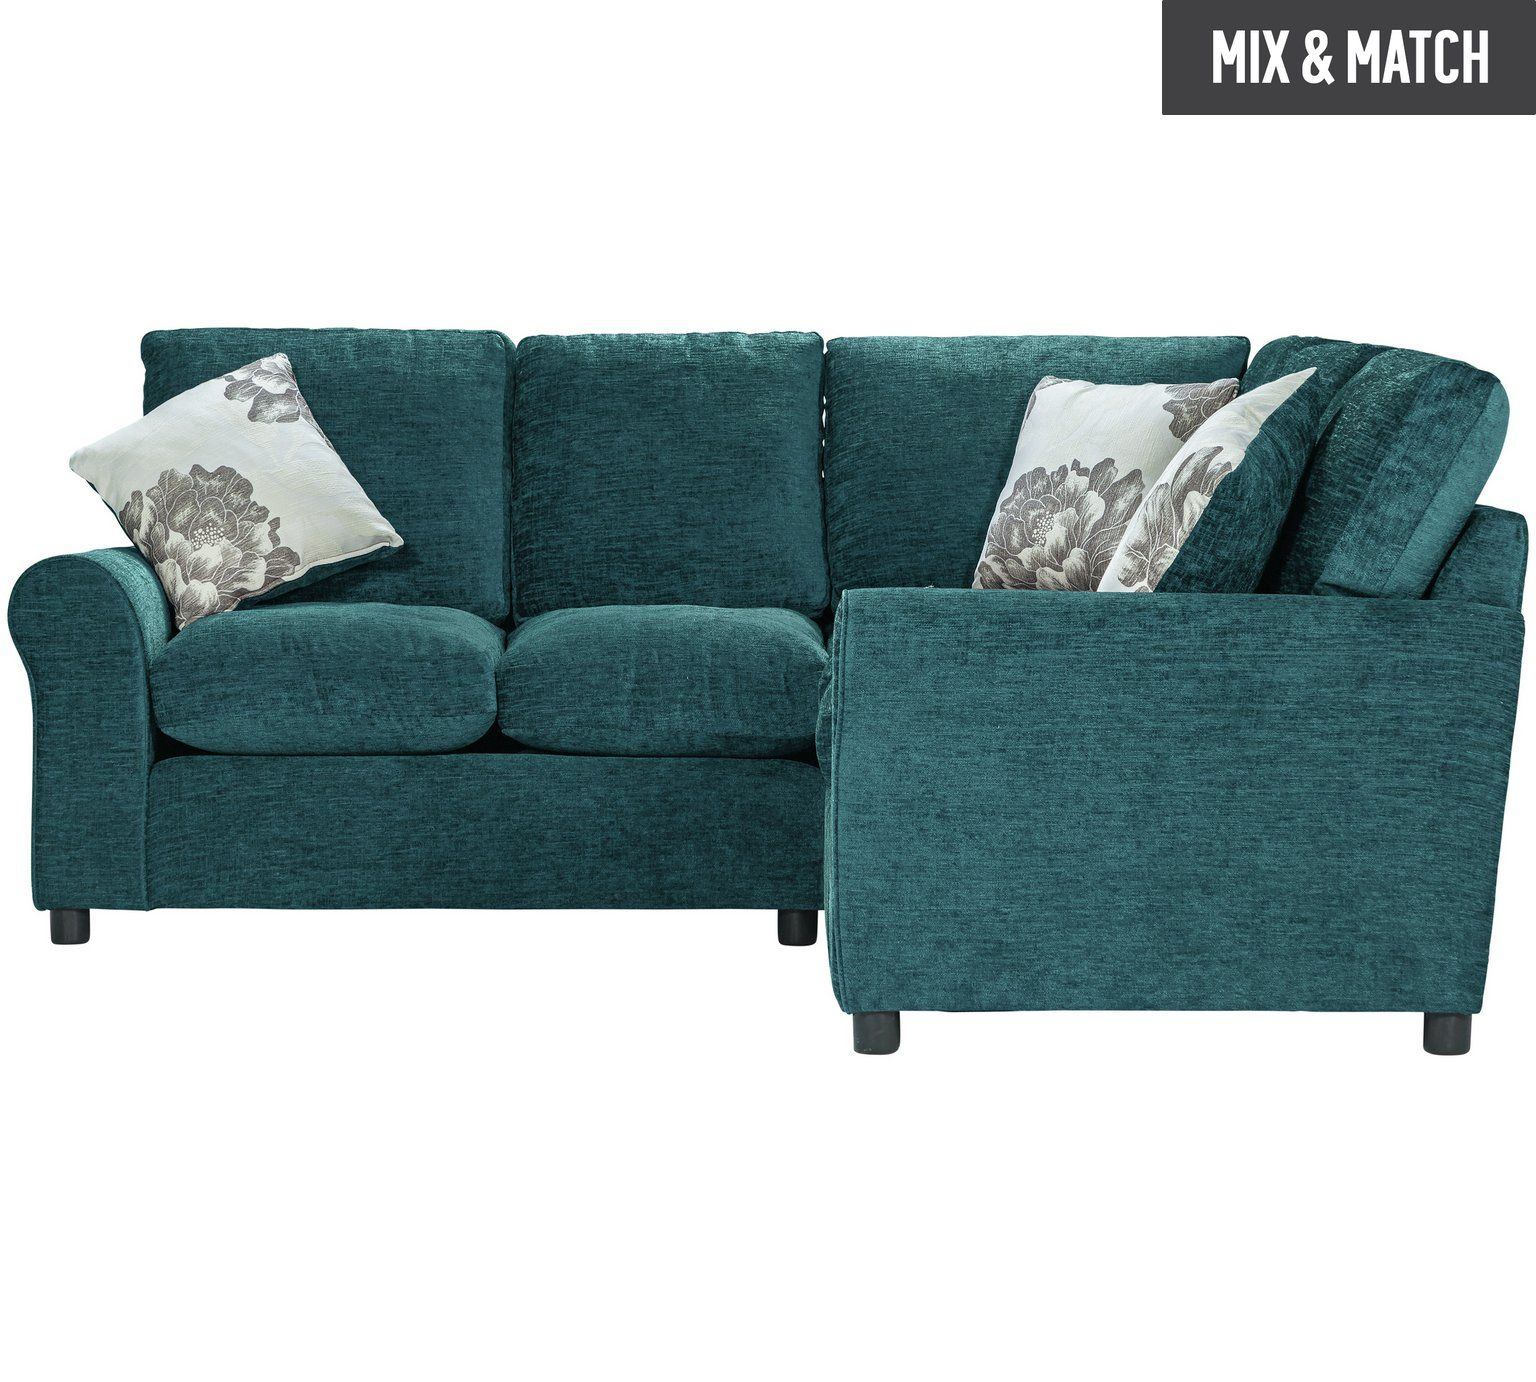 Buy Home Tessa Fabric Dual Facing Corner Sofa Teal At Argos Co Uk Your Online Shop For Sofas Living Room Furniture Home Teal Sofa Corner Sofa Argos Home